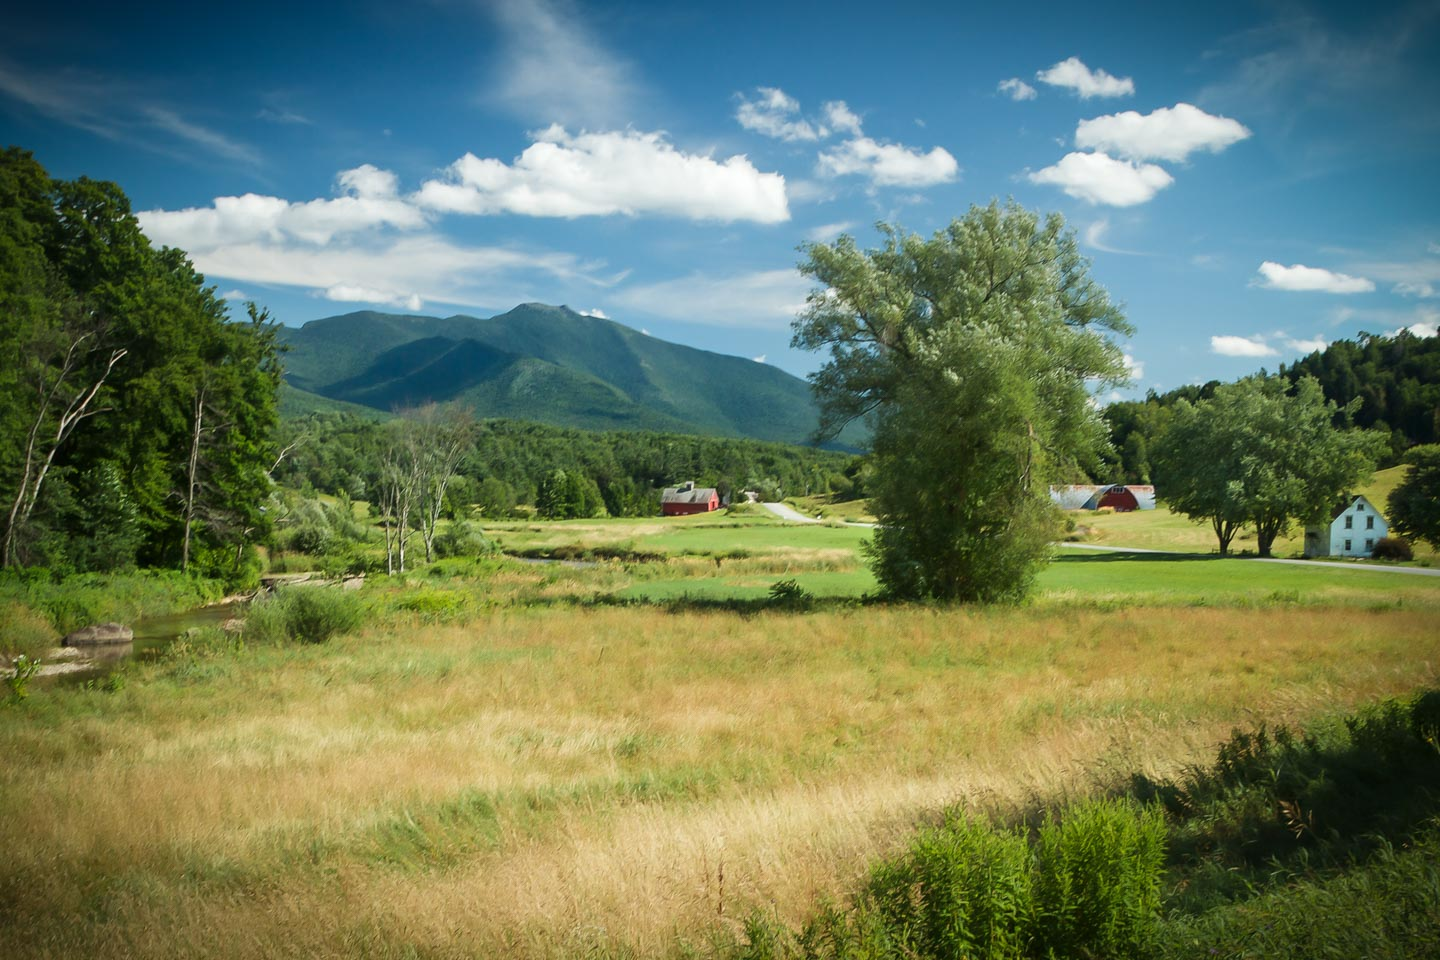 landscape of mt mansfield in background field and trees in foreground a red house and barn in the distance